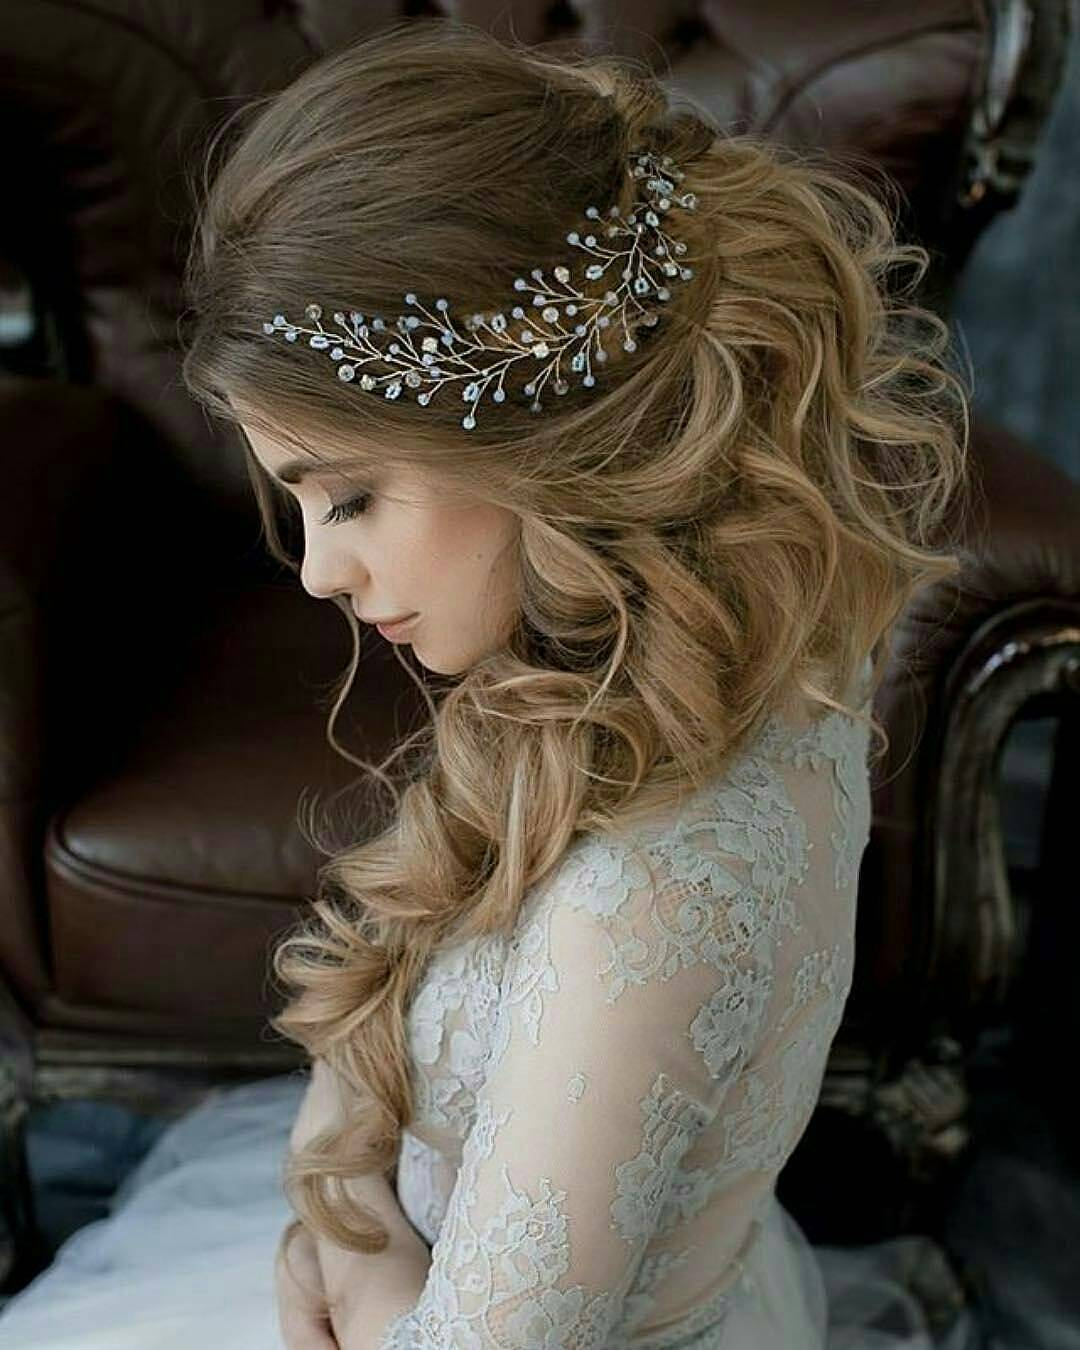 10 lavish wedding hairstyles for long hair - wedding hairstyle ideas